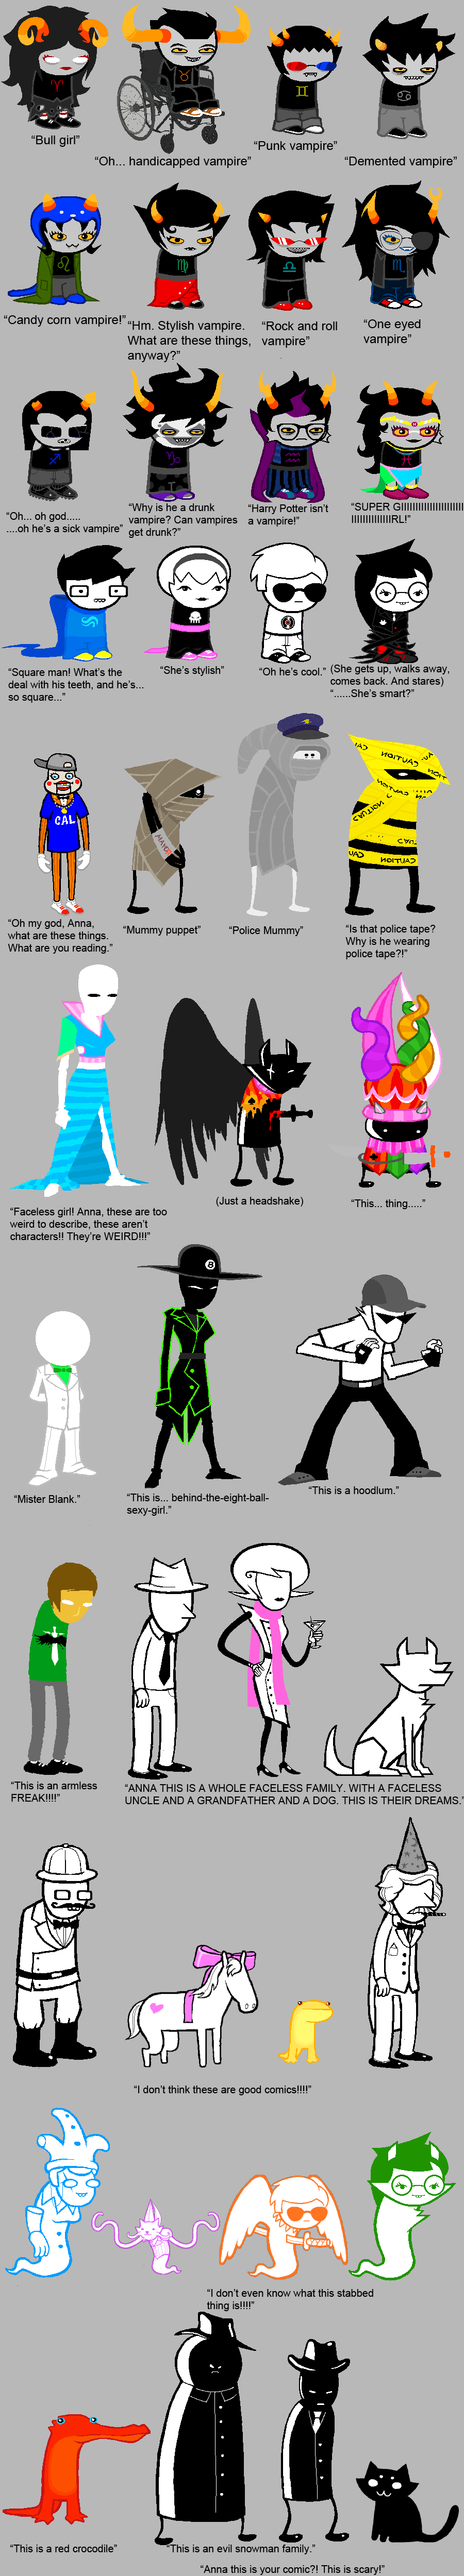 Homestuck According To My Mom by TrinityCowgirl